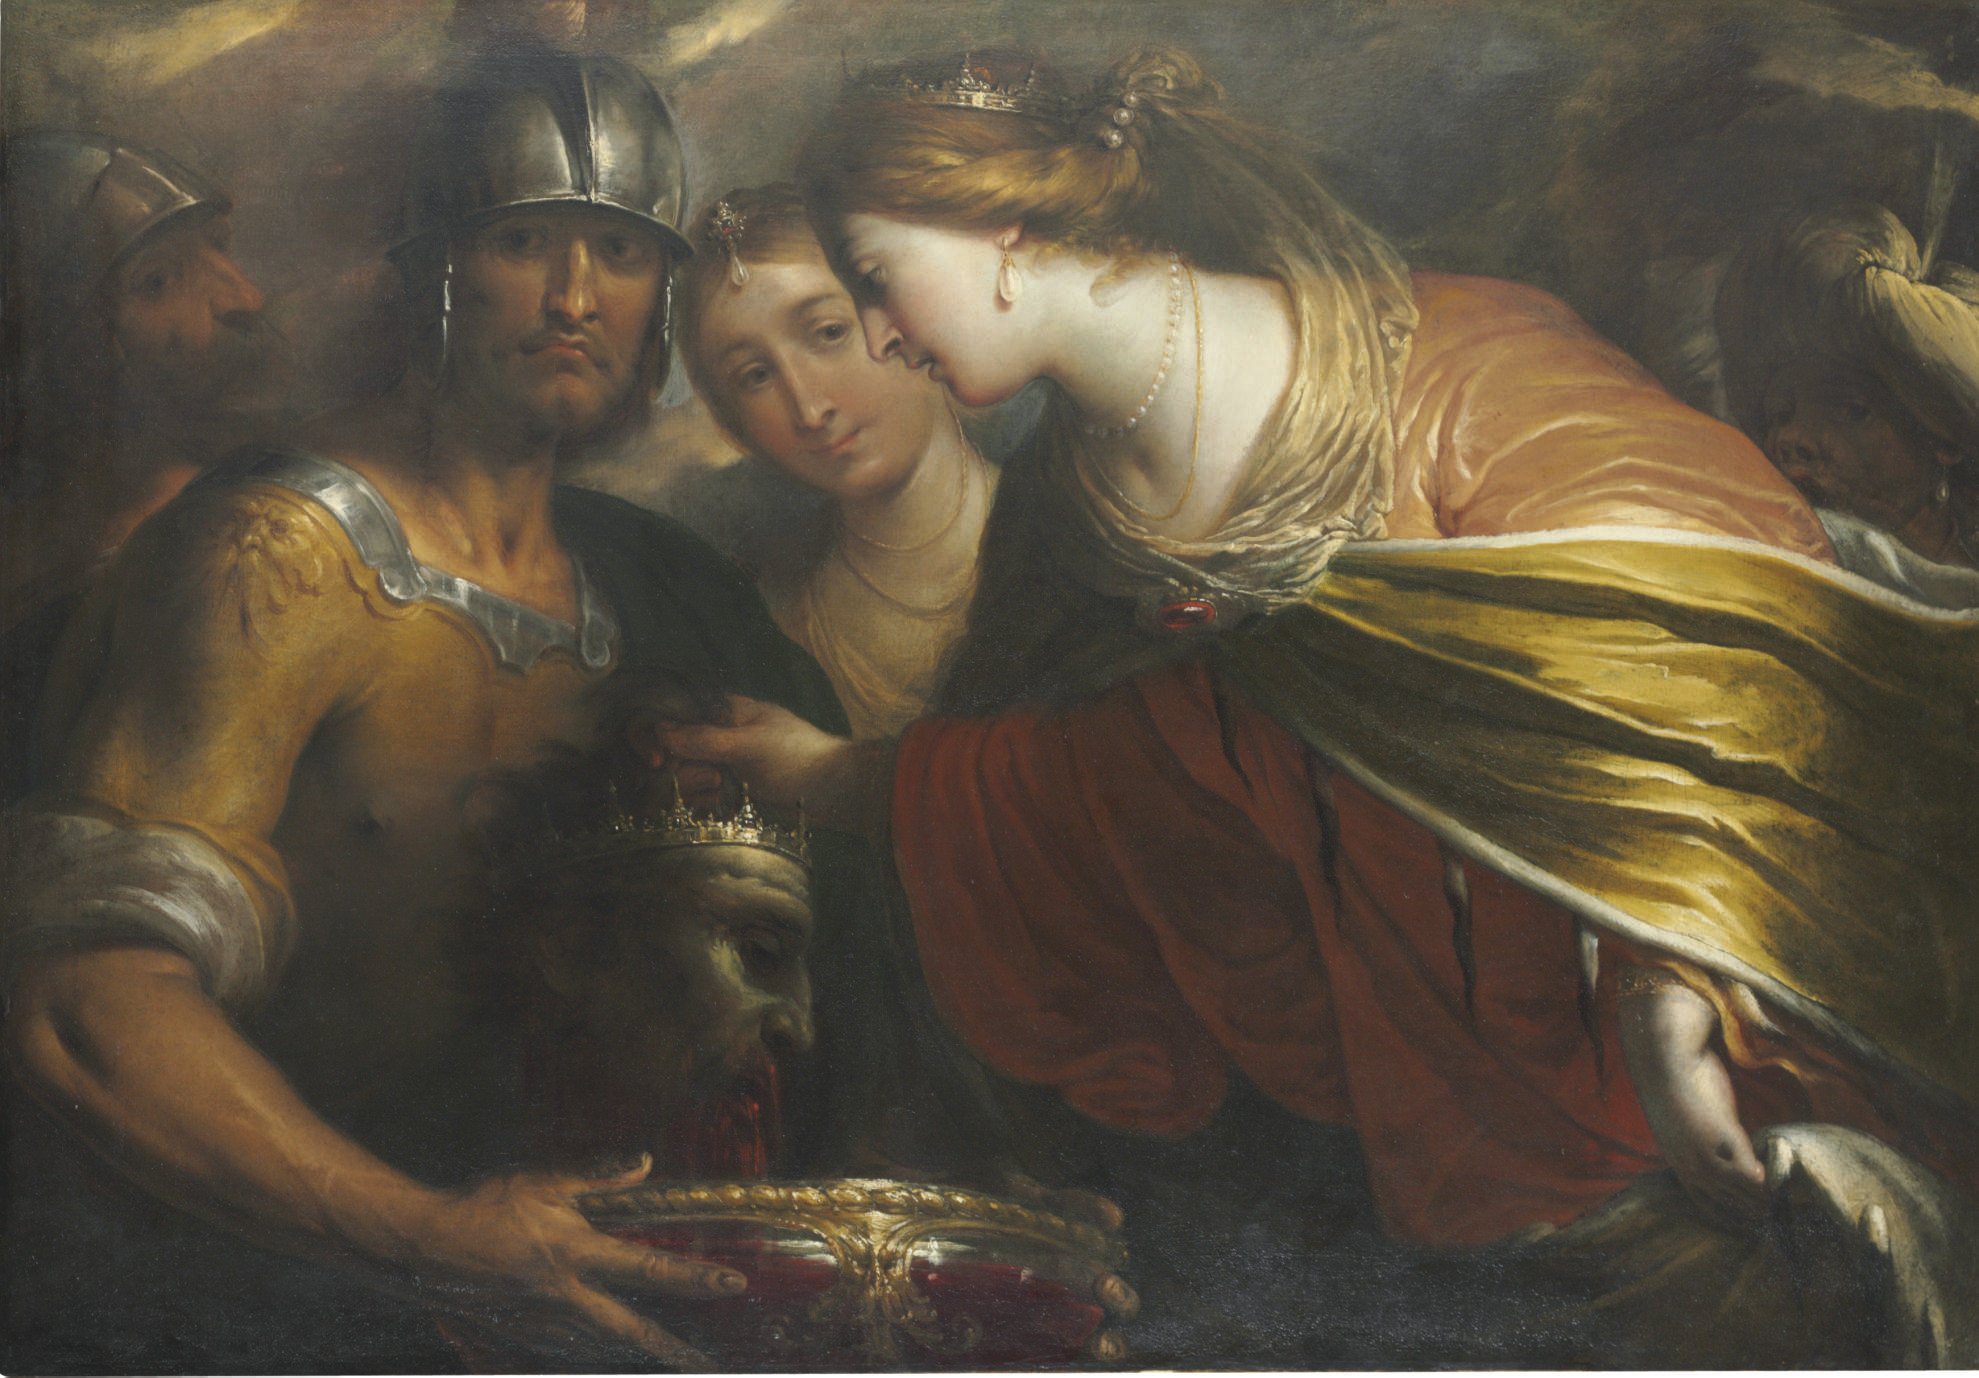 Queen Tomyris with the head of King Cyrus